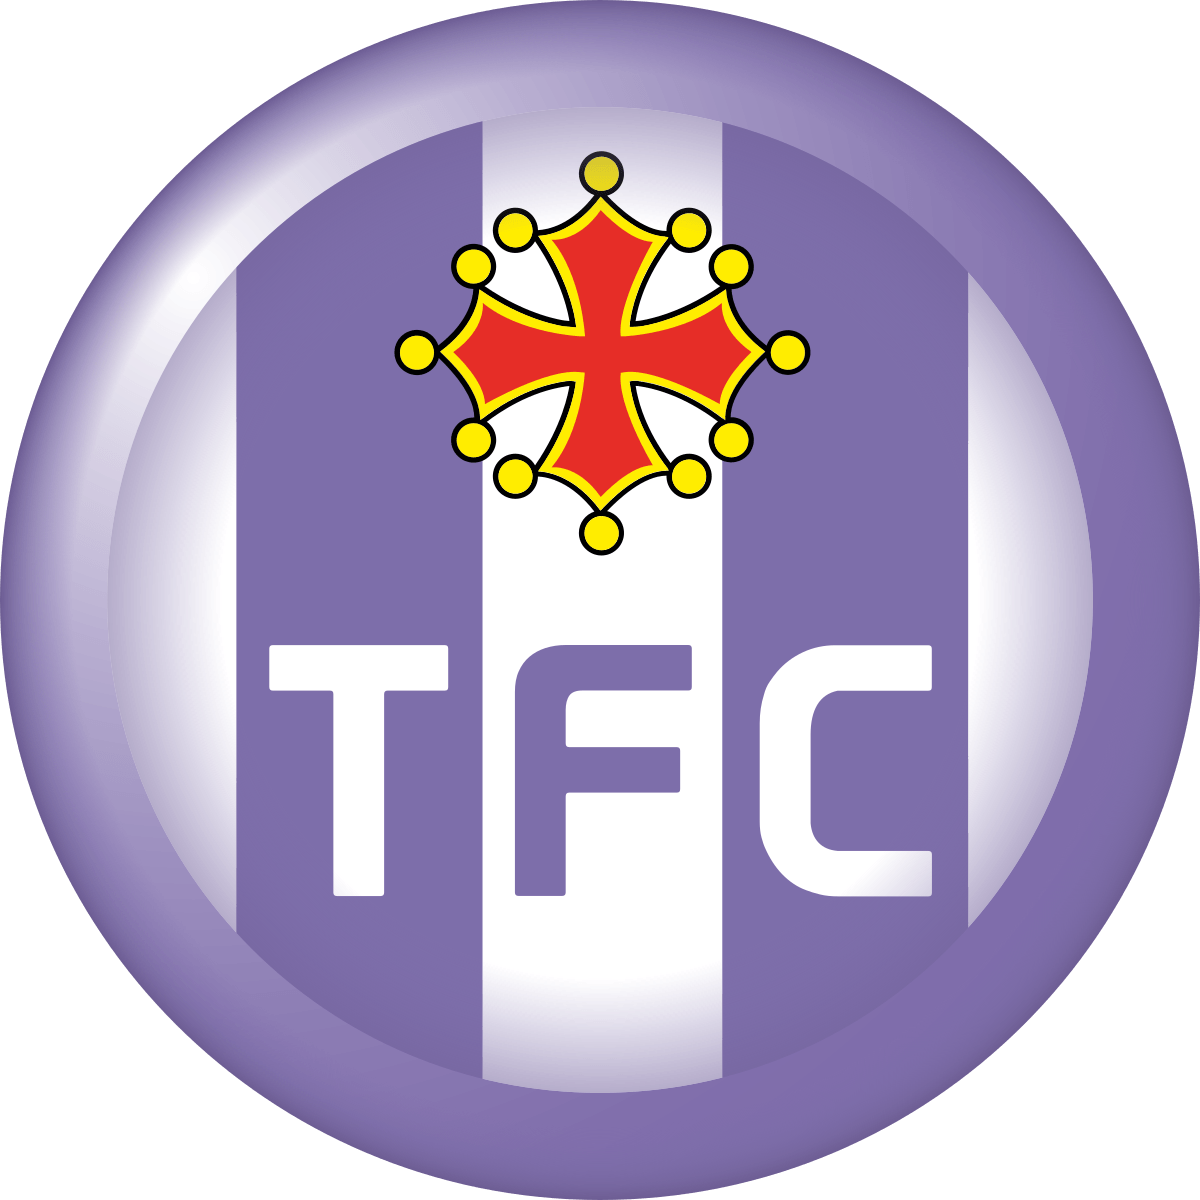 Toulouse Football Club - Welcome to Purple Inside! The website of ...